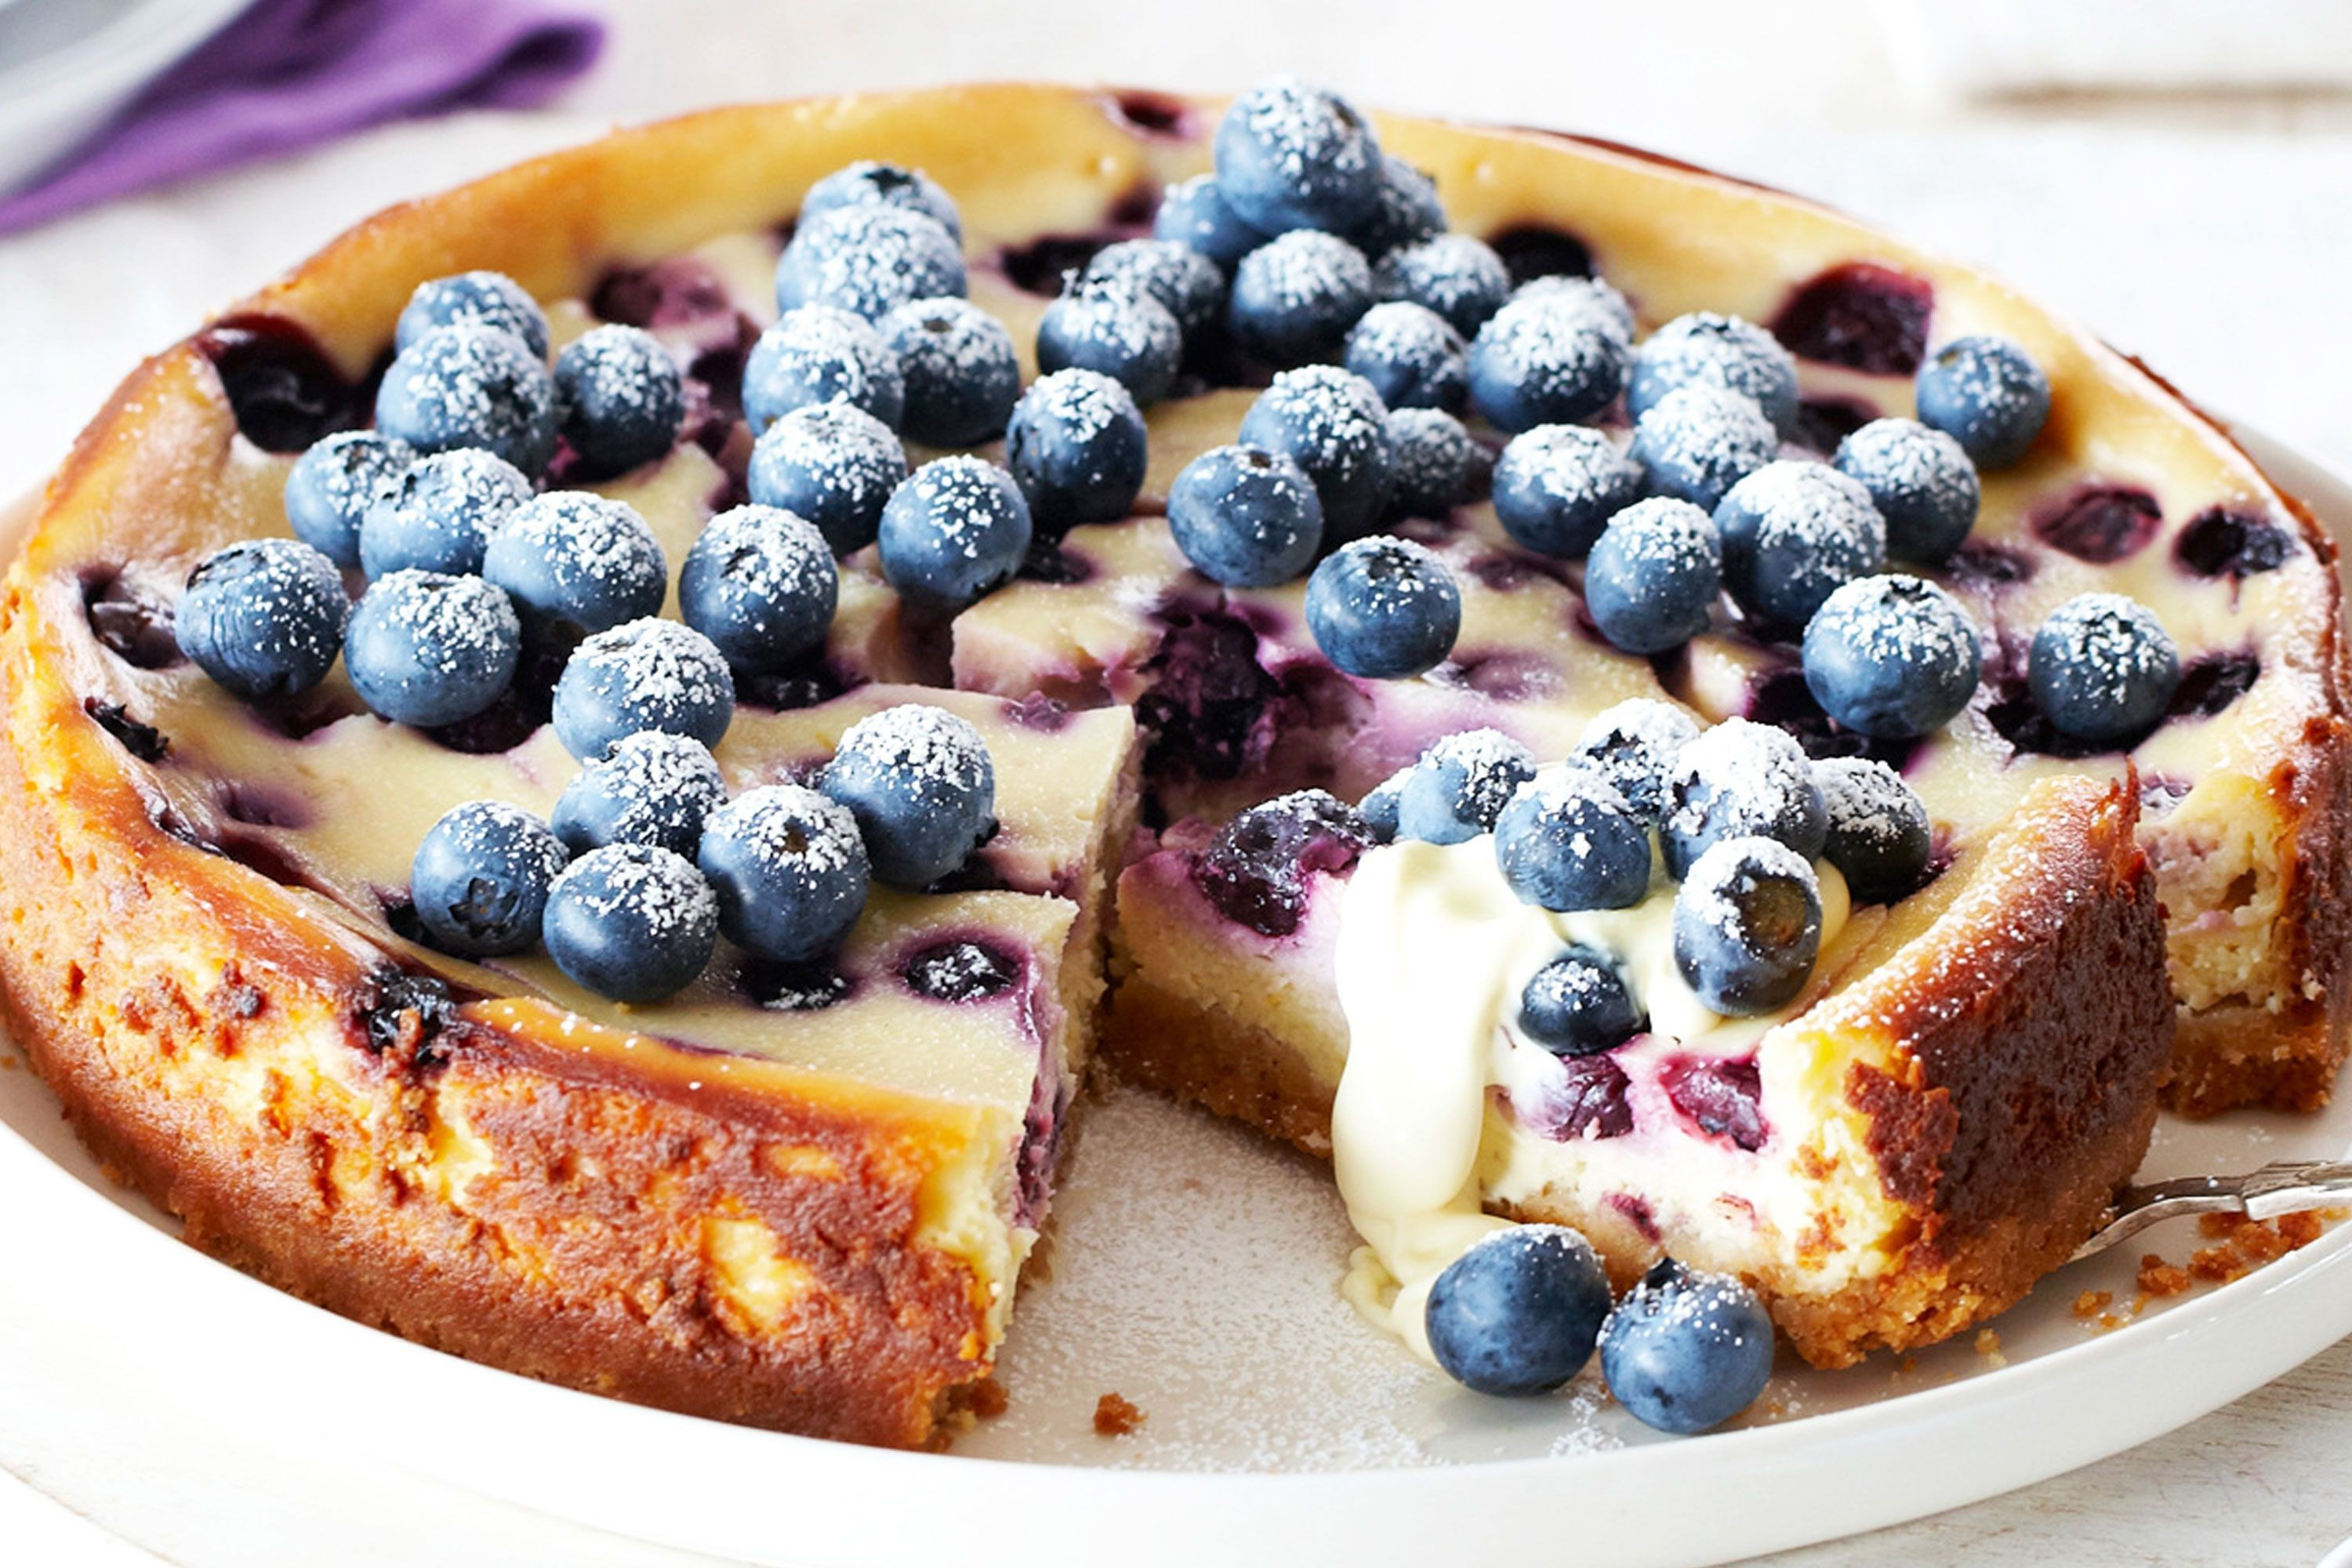 Recipes With Lemon Cake Mix And Blueberries